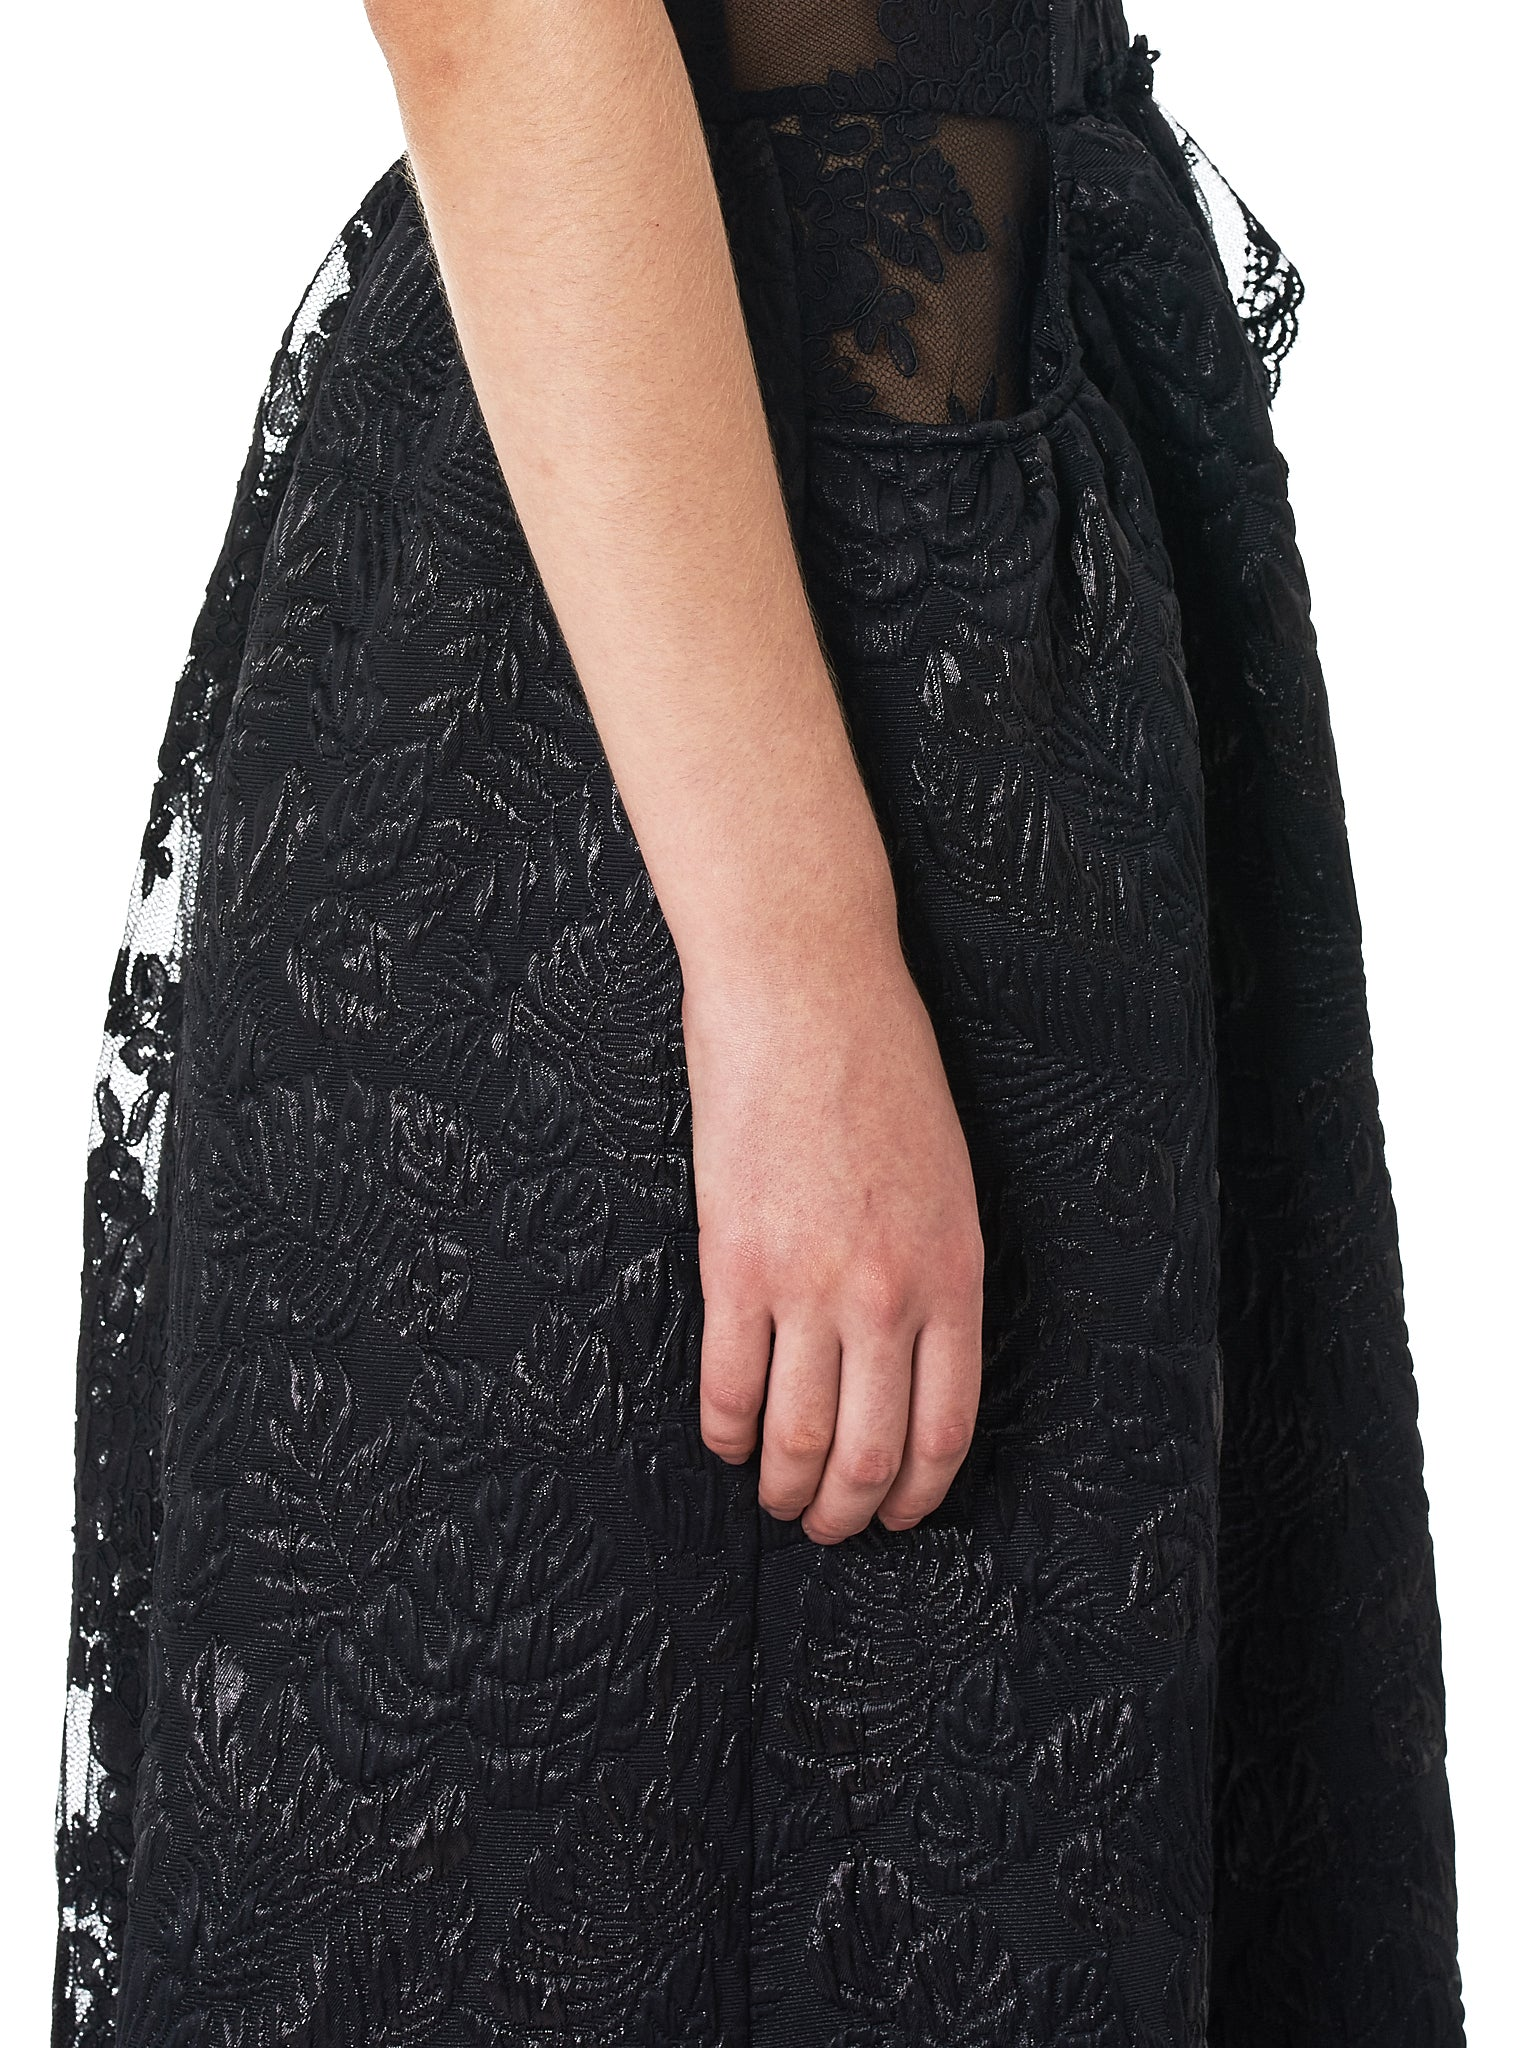 Simone Rocha Dress - Hlorenzo Detail 1